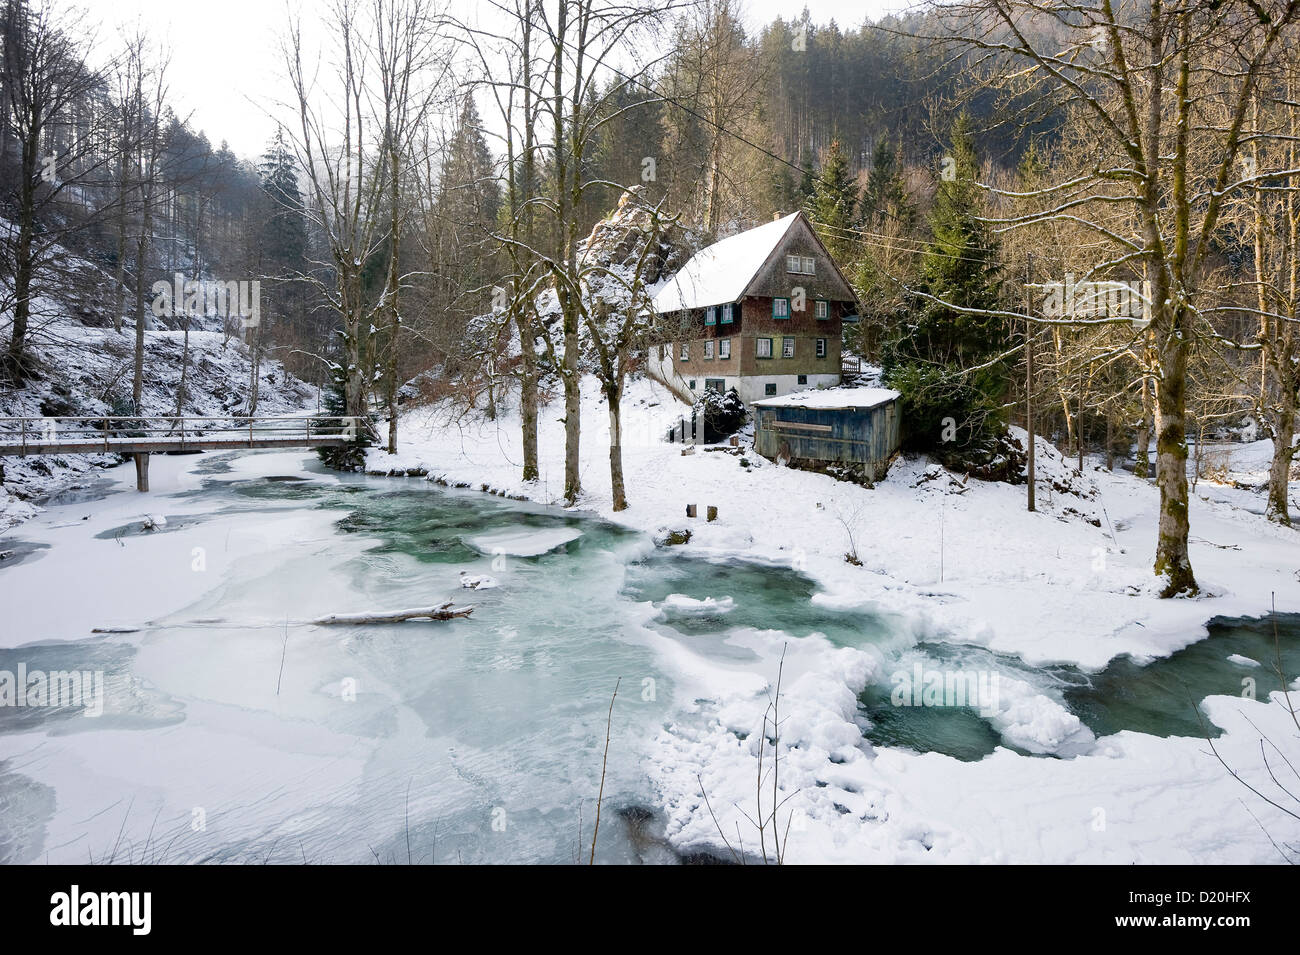 Traditional house and icy stream near Hinterzarten, Black Forest, Baden-Wurttemberg, Germany - Stock Image